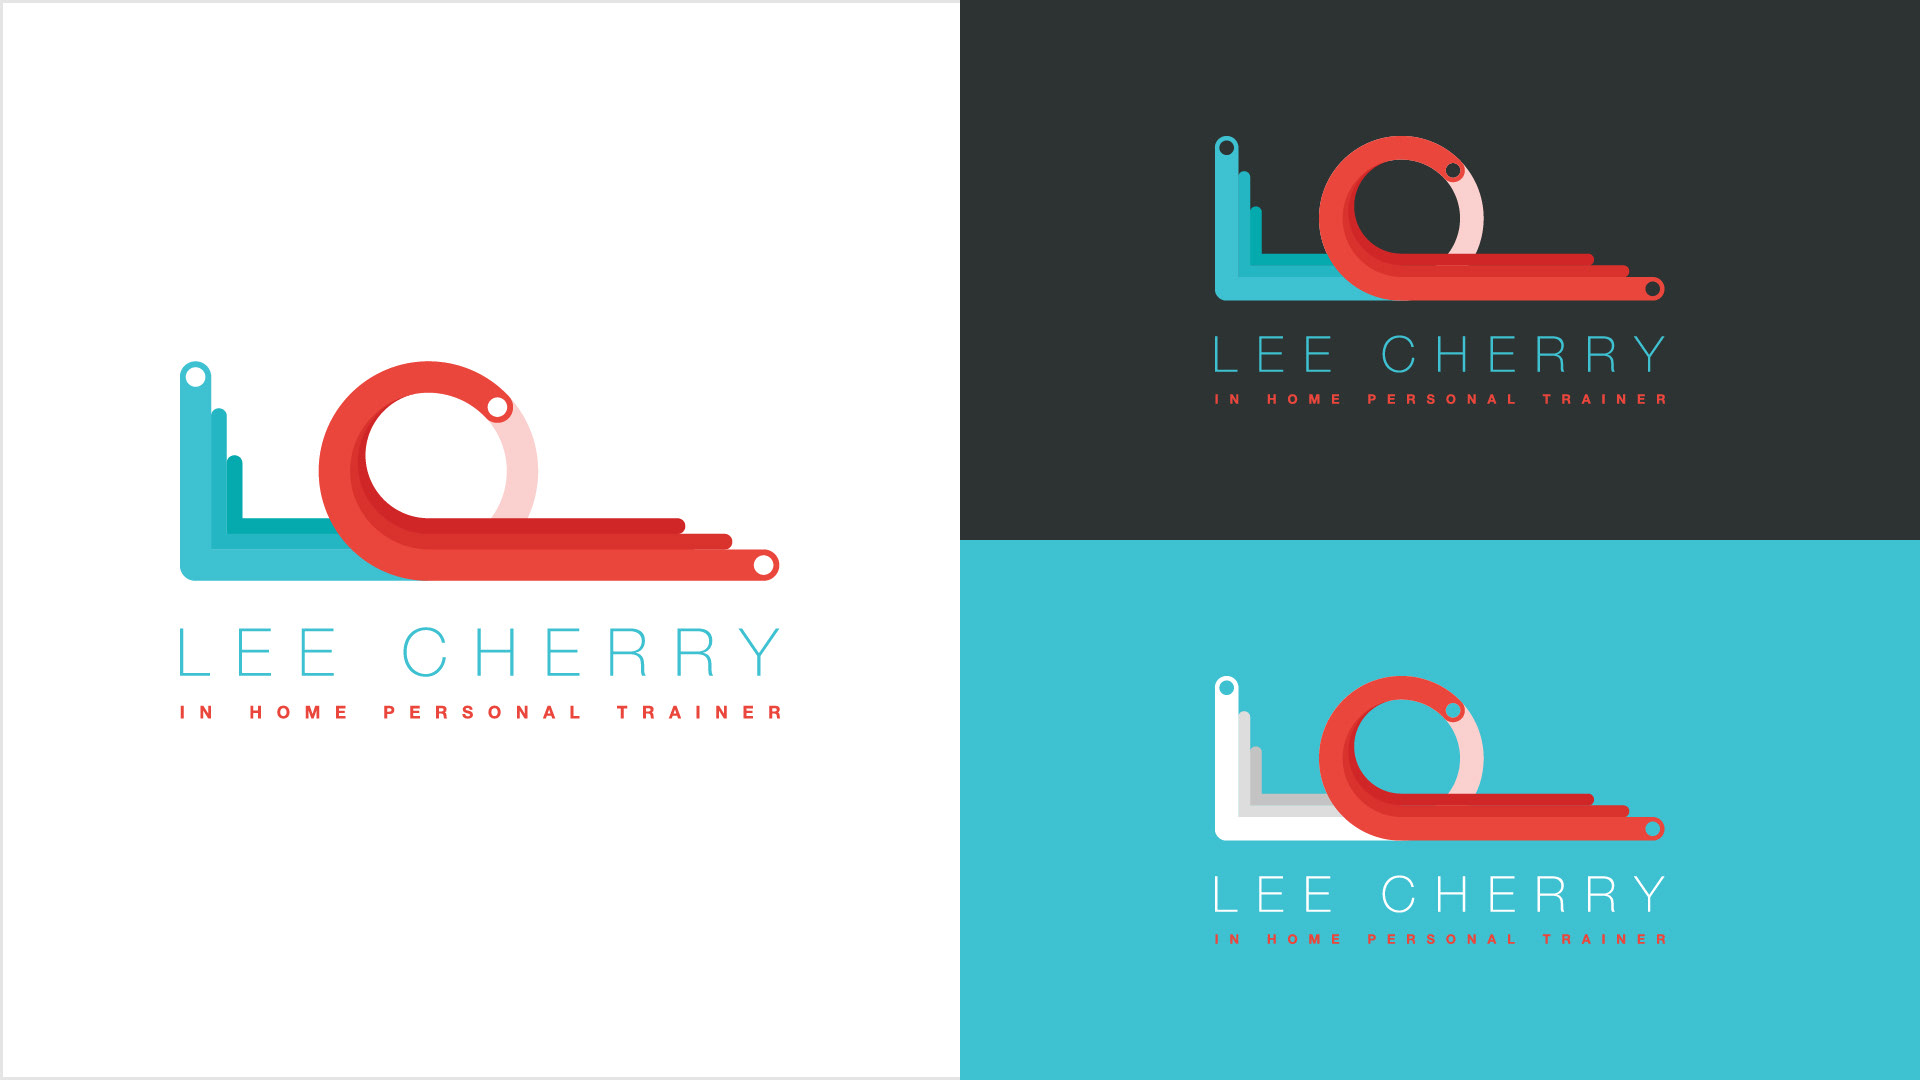 danimal design dan allan lee cherry personal trainer logo design